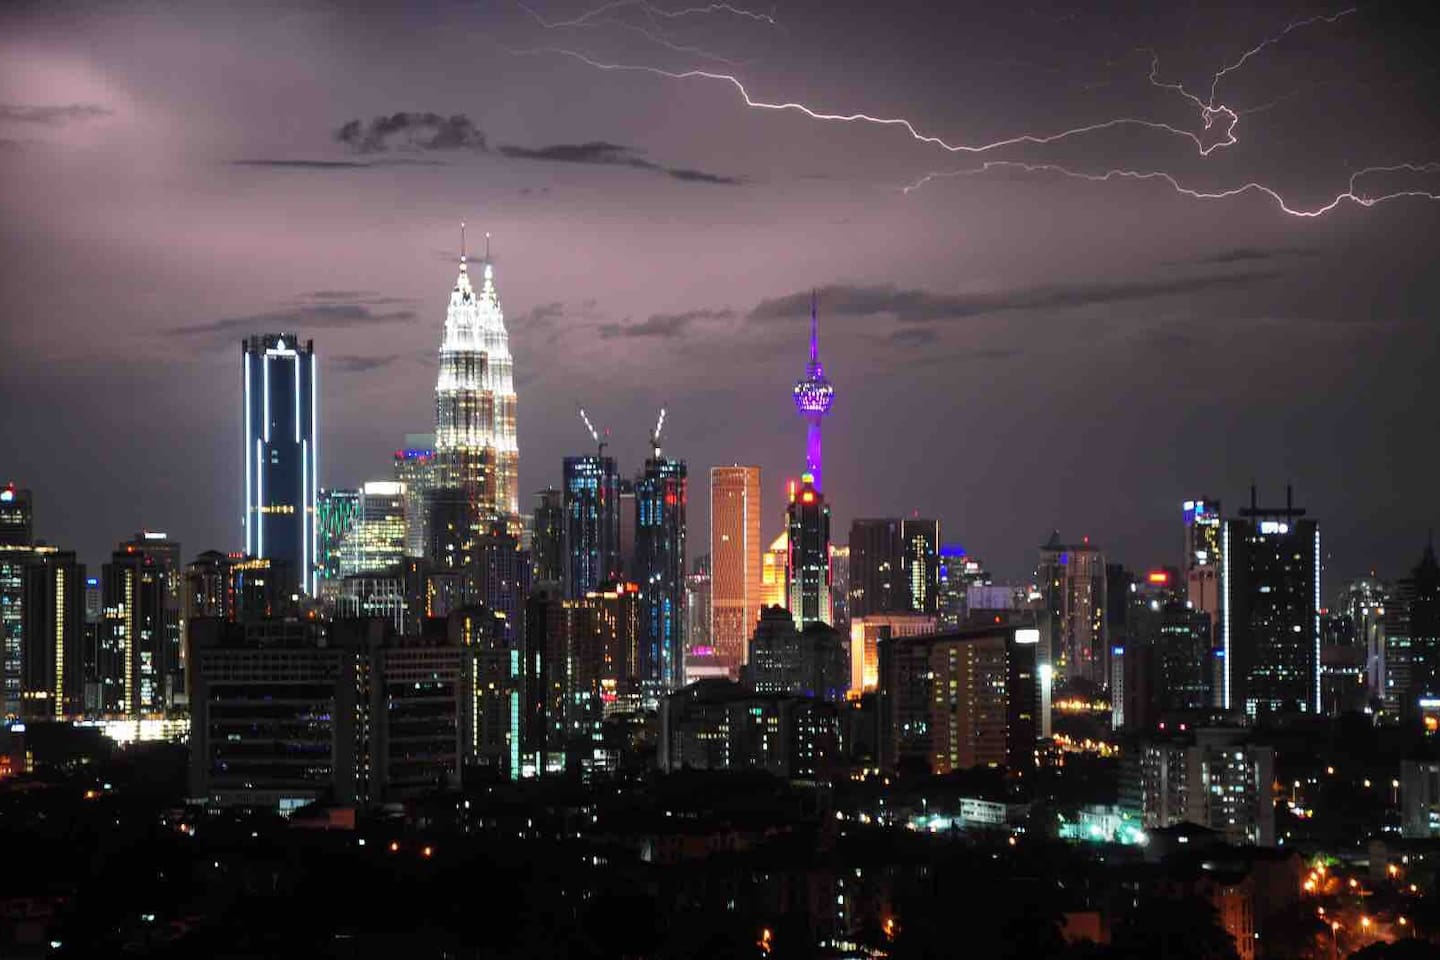 Panoramic view of the beautiful Kuala Lumpur lights from the comfort of the living room